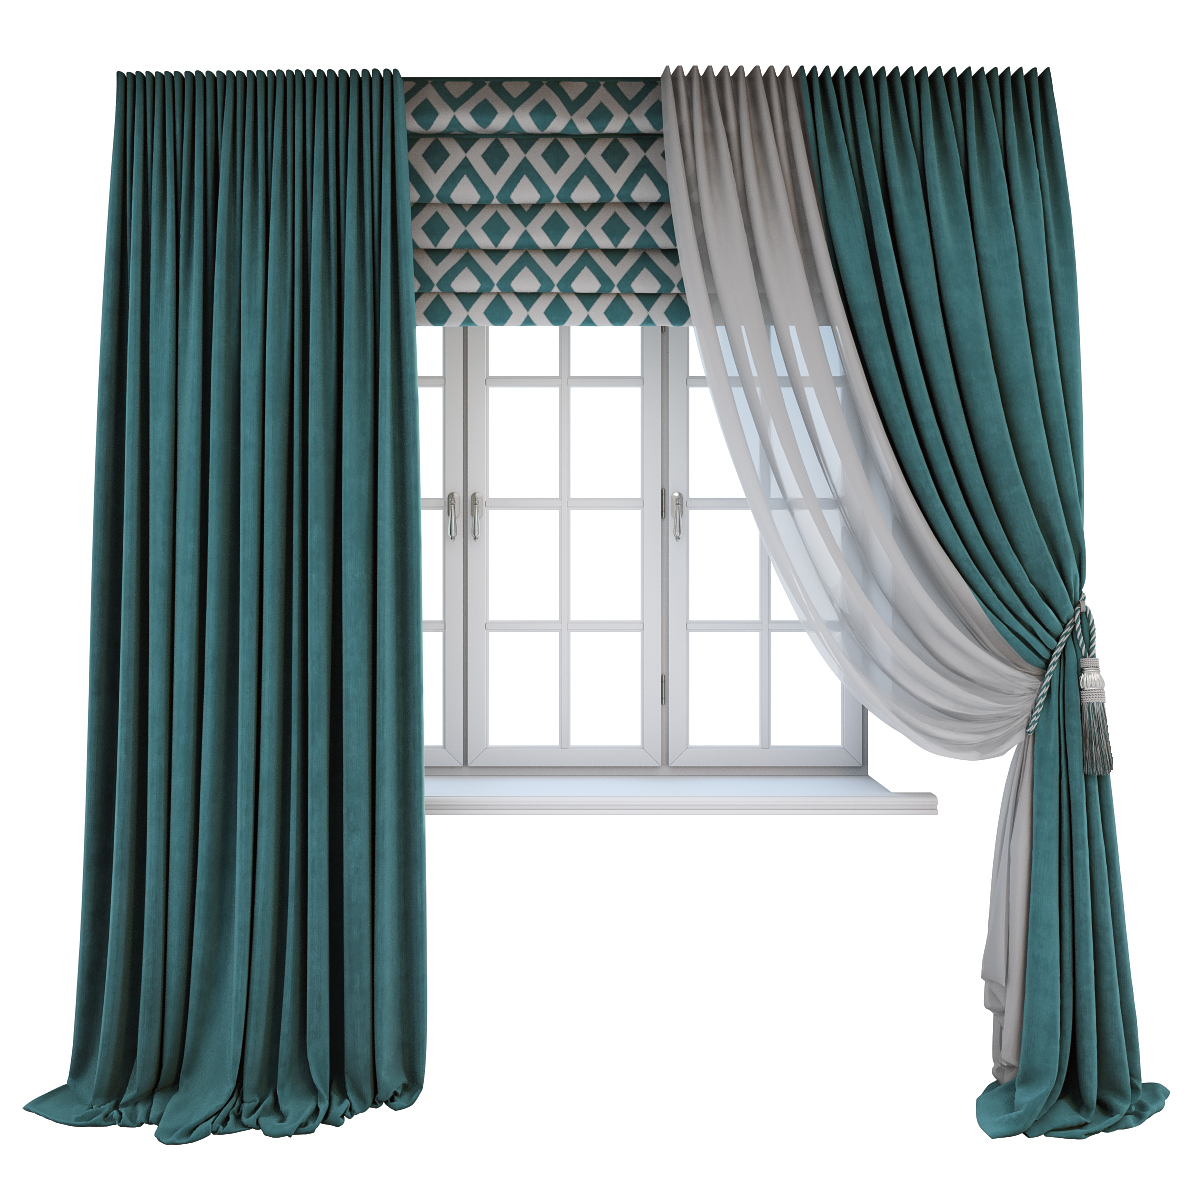 Turquoise Curtains, A Roman Shade With A Geometric Pattern